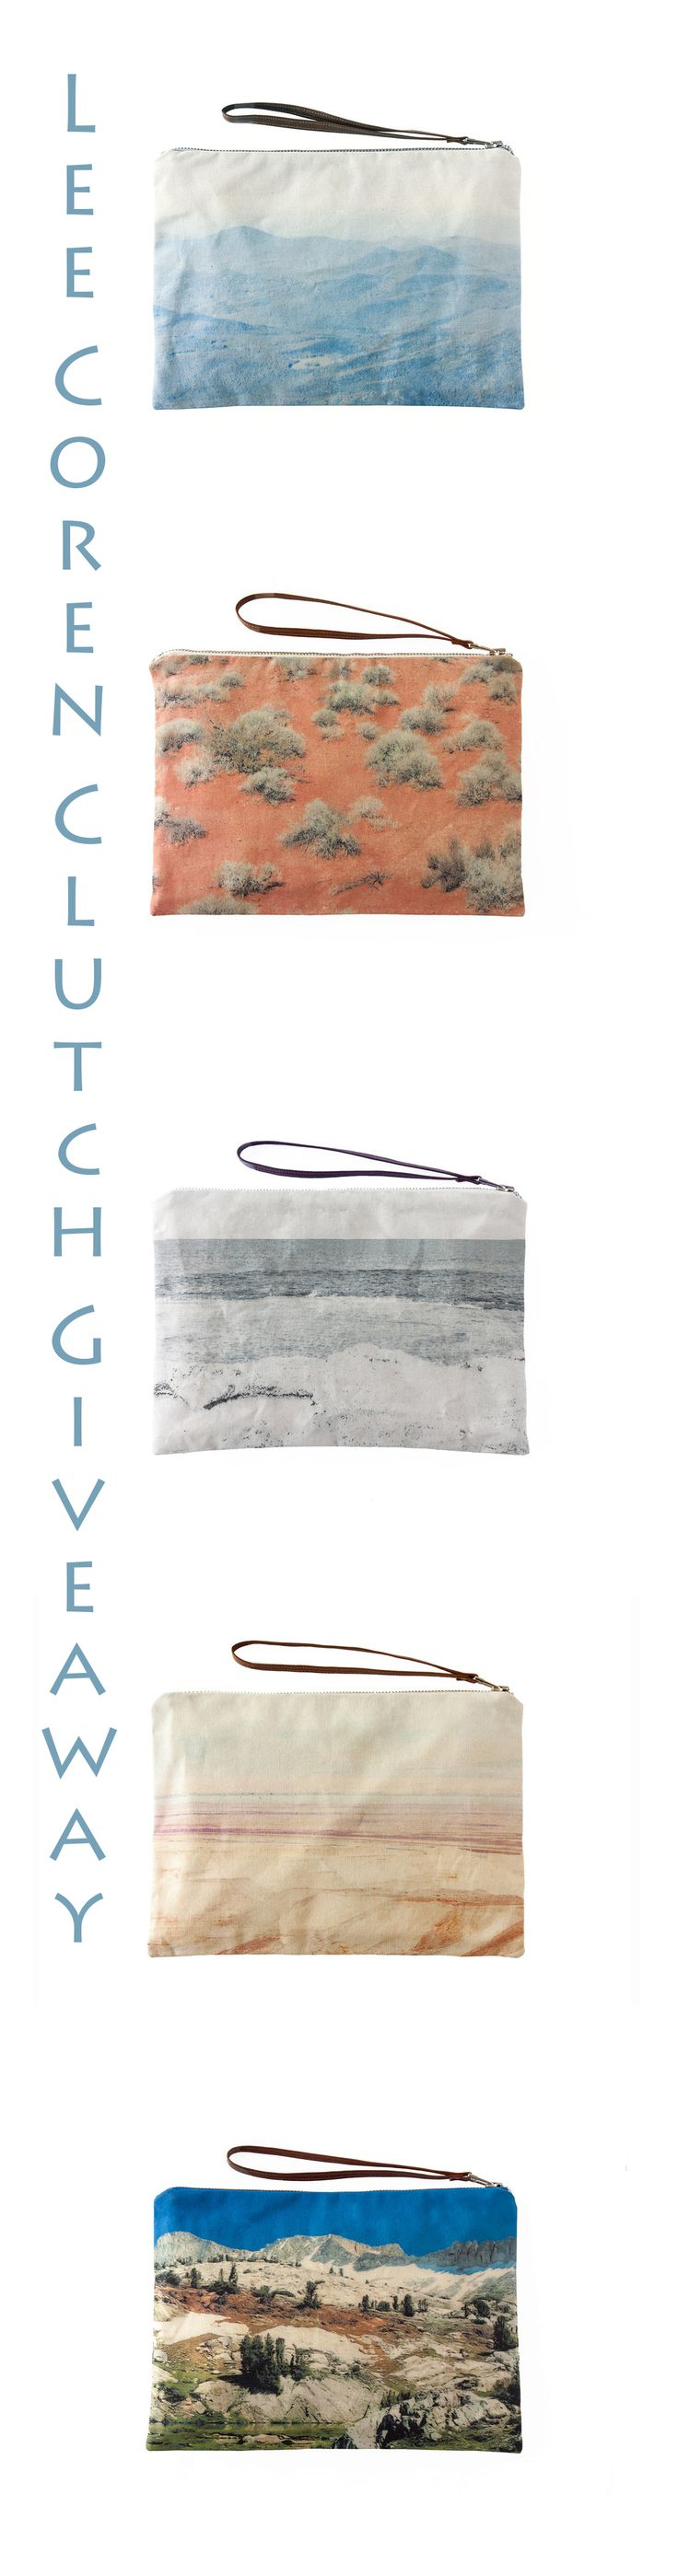 Thought & Sight giveaway: Enter to win a gorgeous Landscape Clutch from Lee Coren Studio!